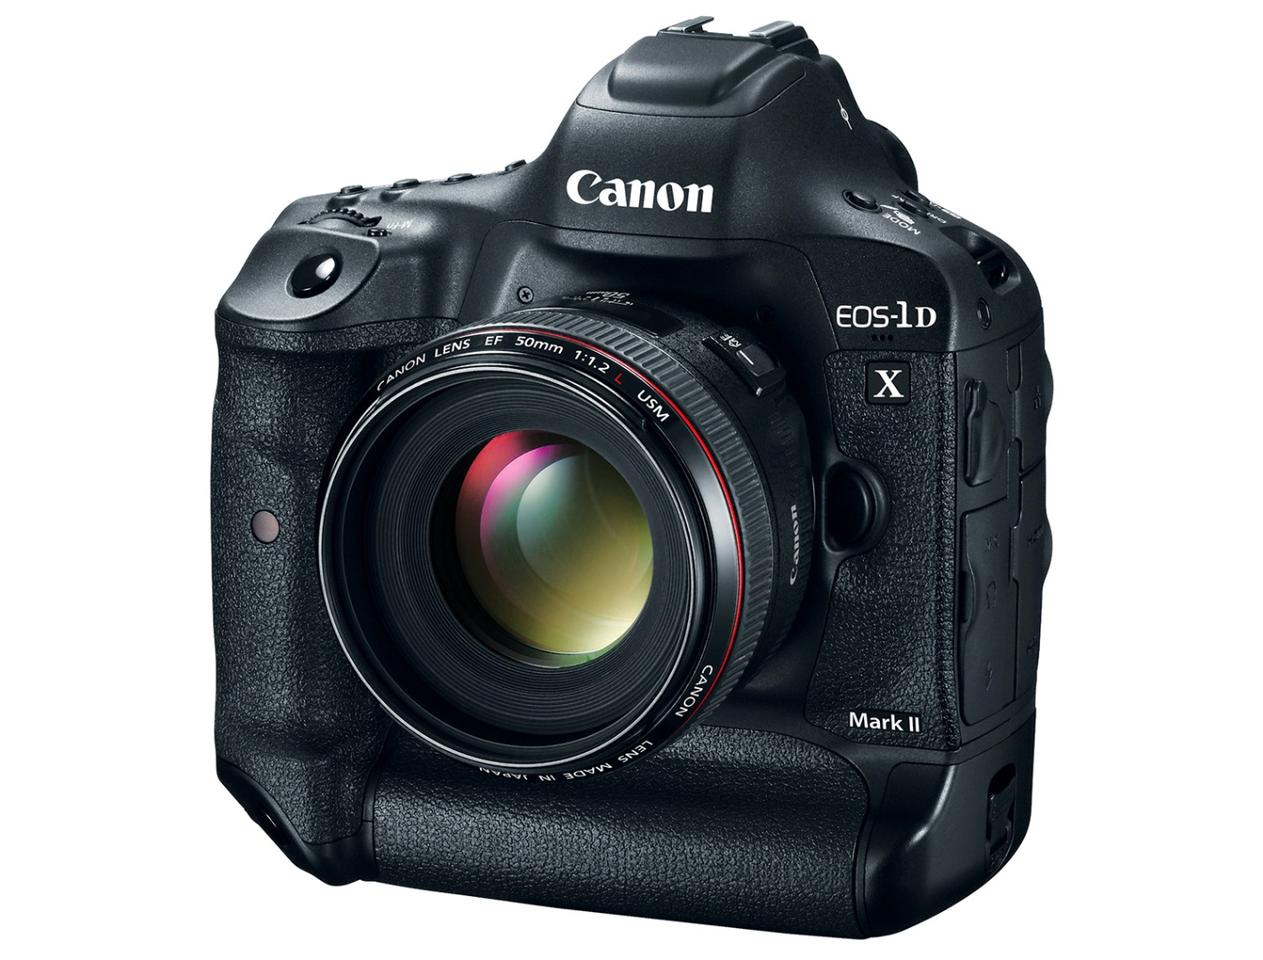 The Canon EOS-1D X Mark II can shoot 4K video at 60/50 fps